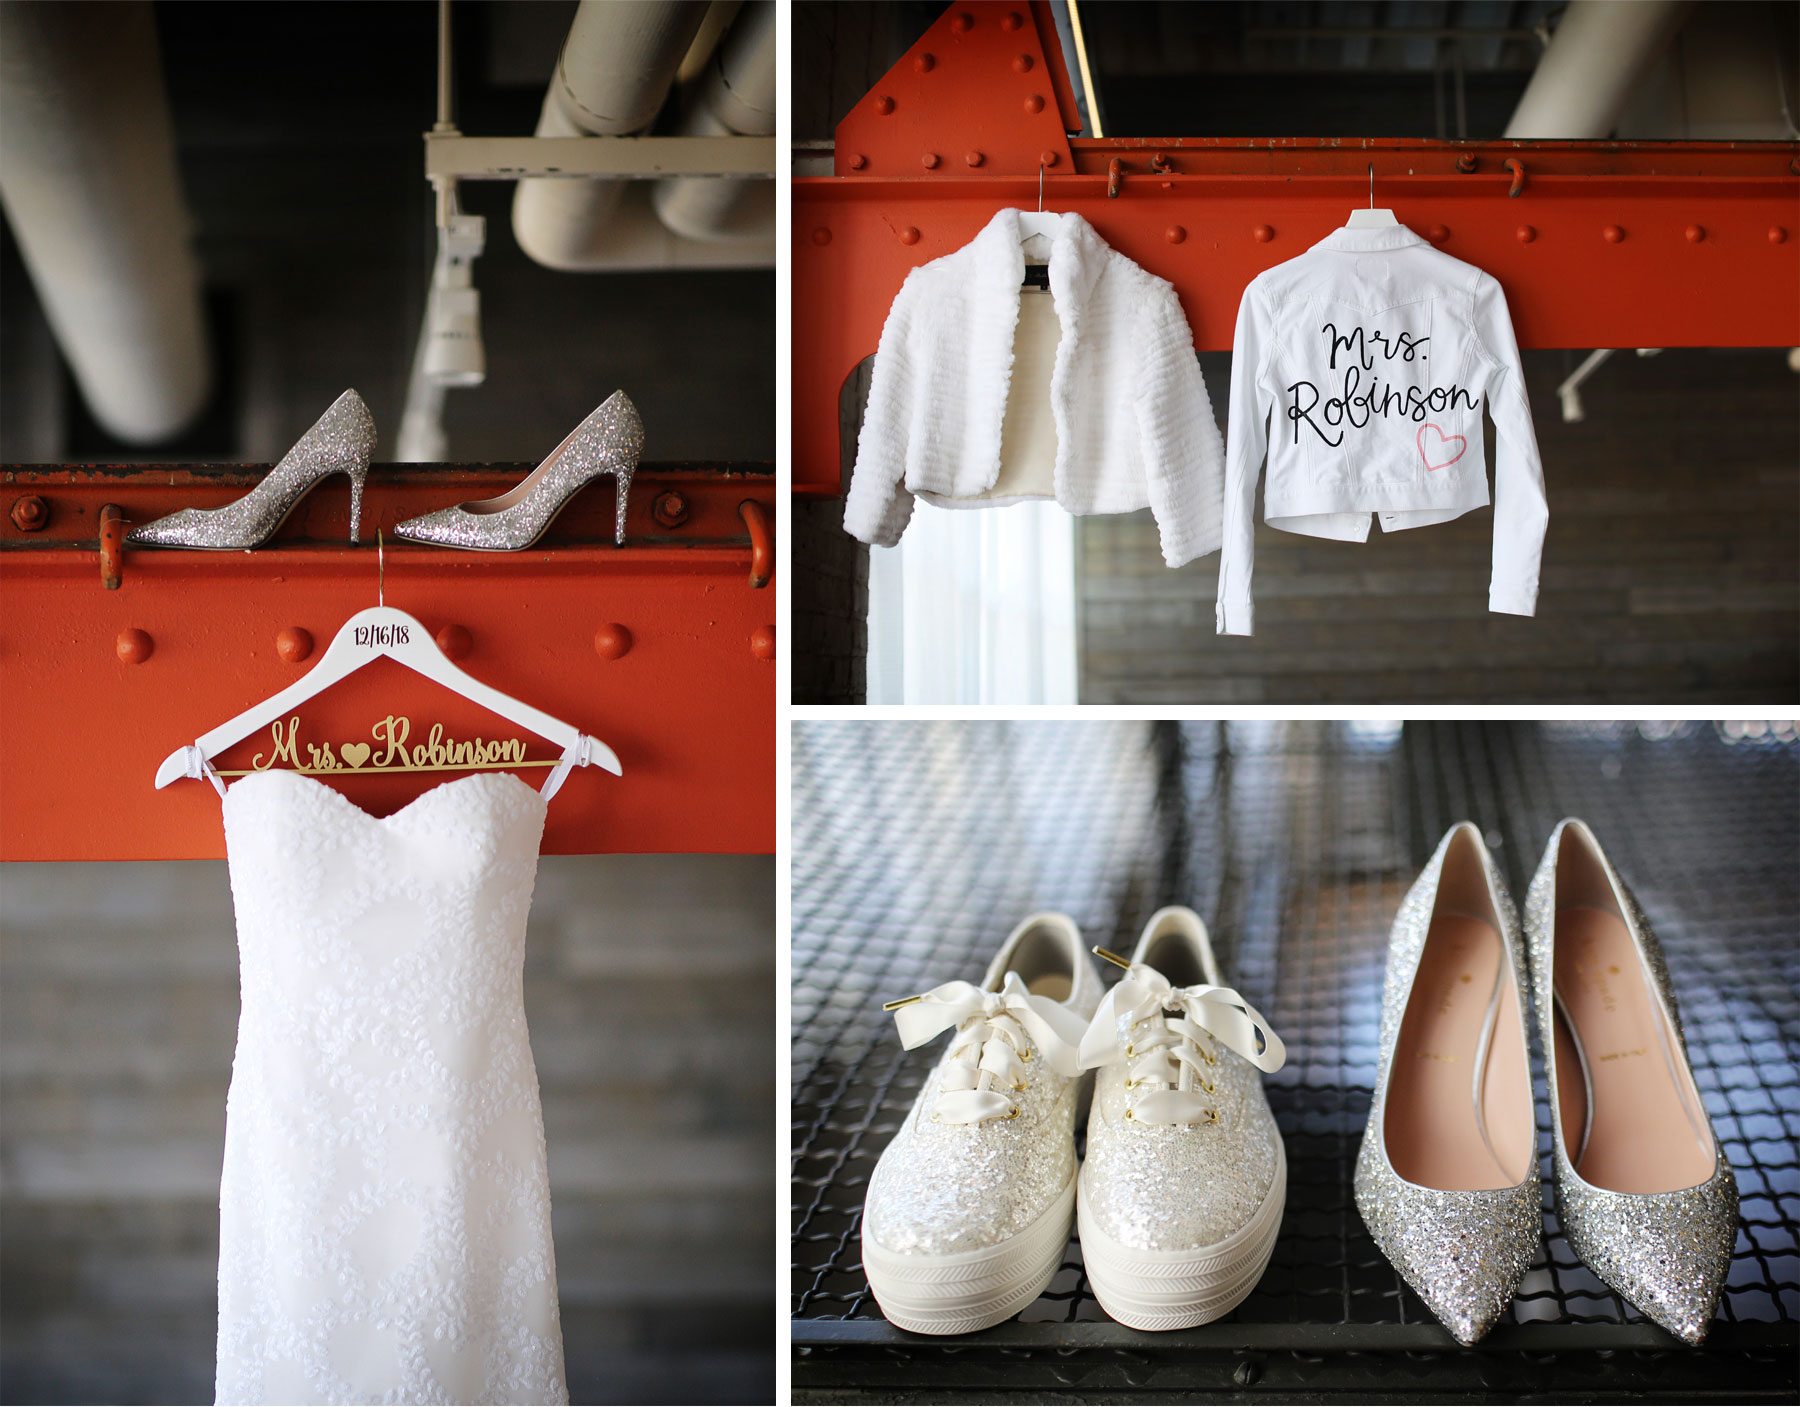 01-Minneapolis-Minnesota-Wedding-Photographer-by-Vick-Photography-Machine-Shop-Wedding-Dress-Jacket-Shoes-Details-Alyssa-and-Garron.jpg